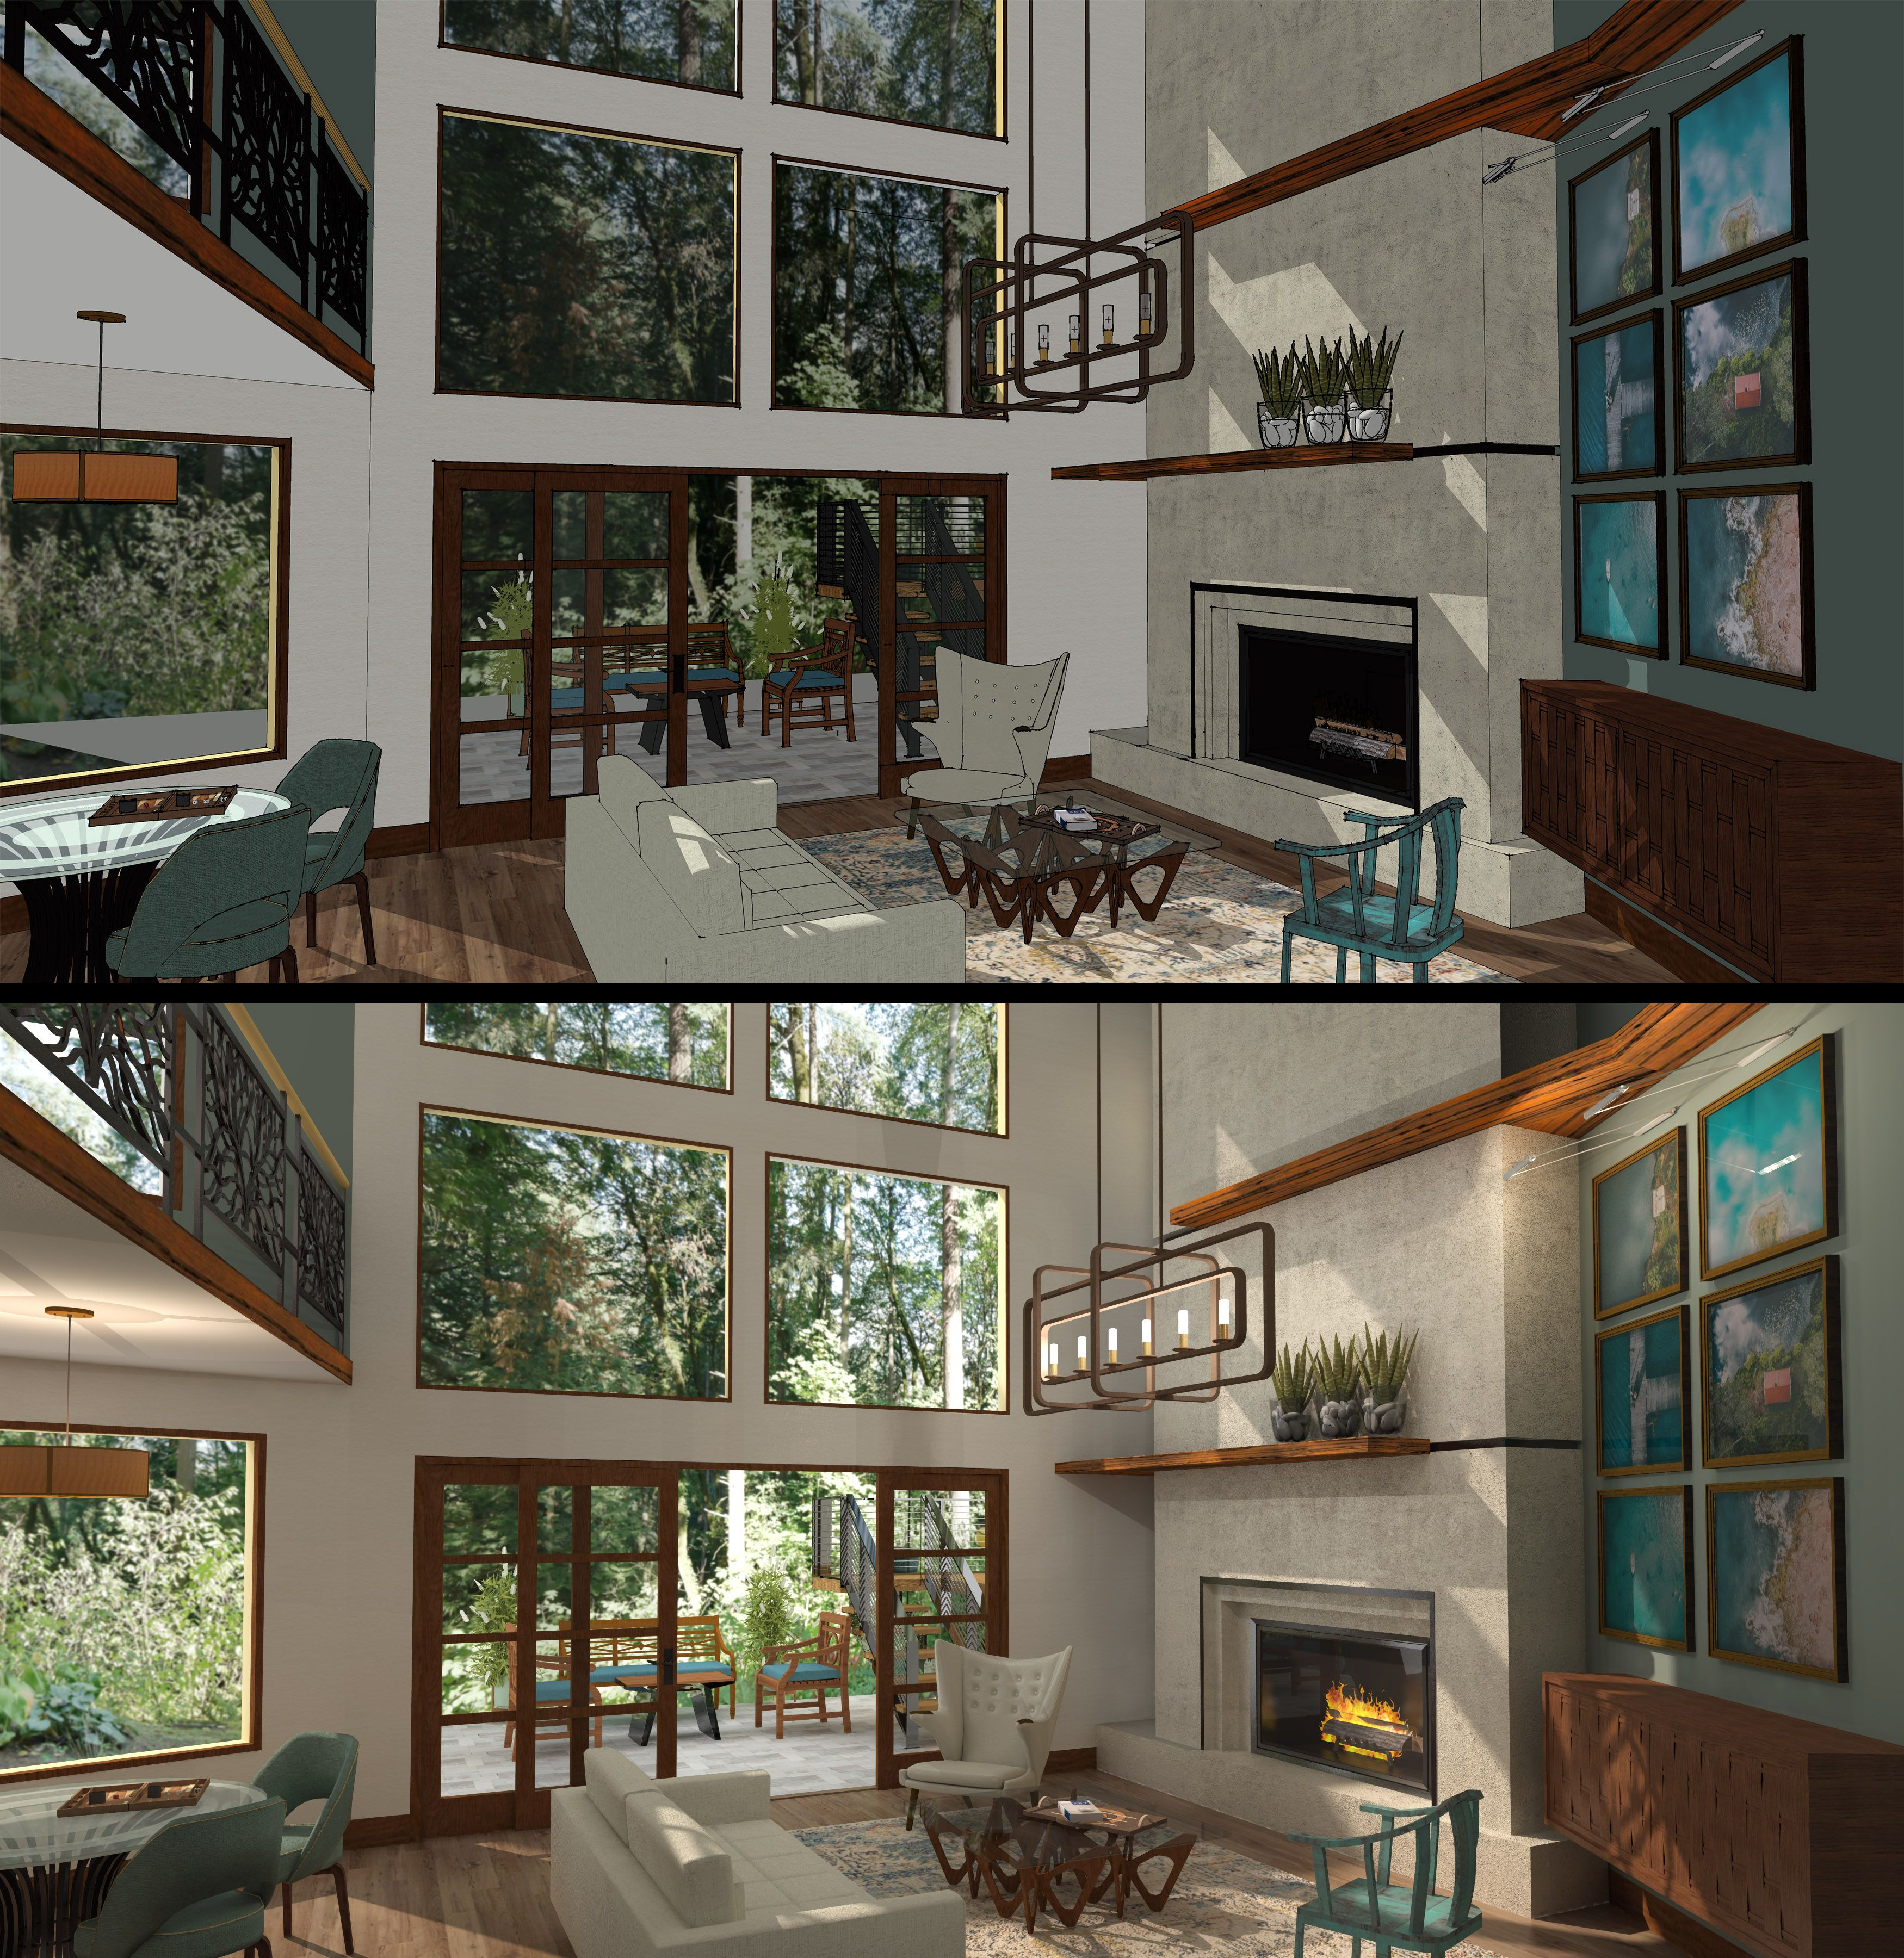 Sketchup Home Design: Architecture, House Styles